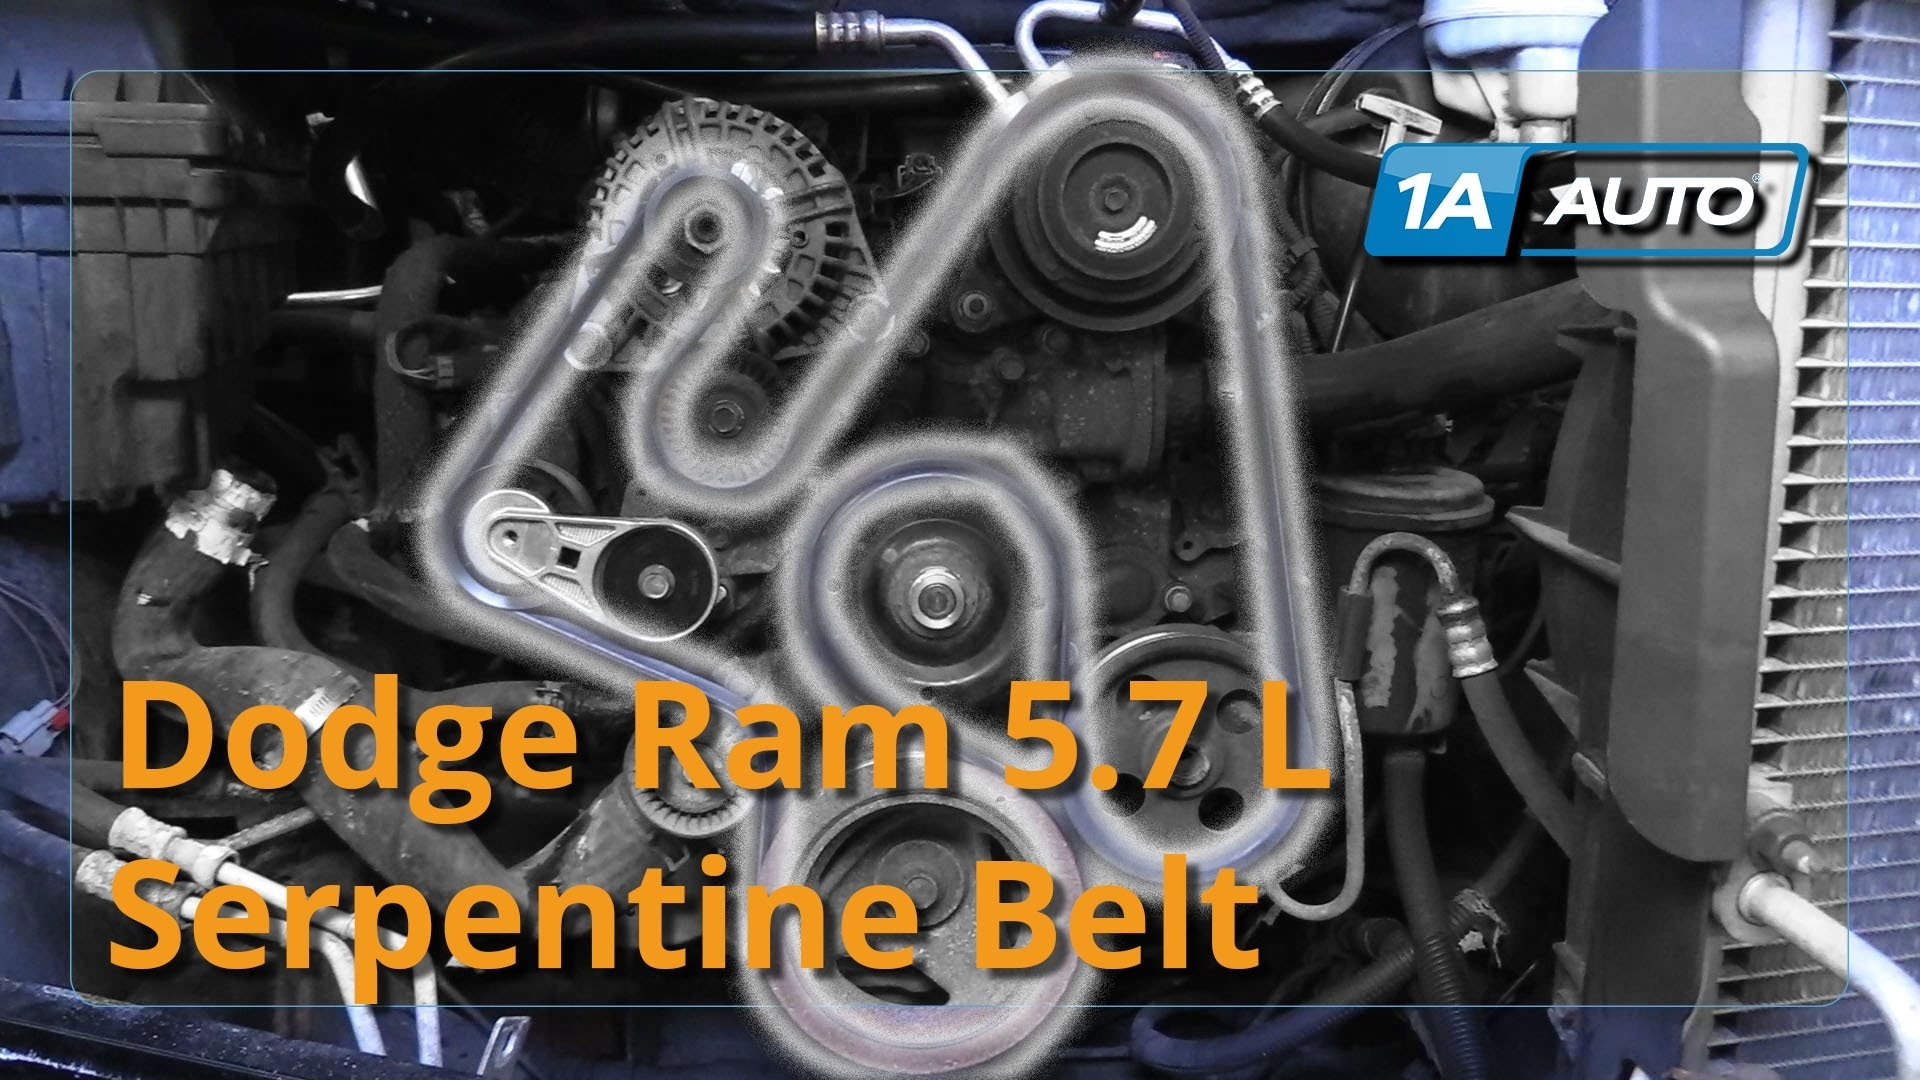 How To Install Replace Serpentine Belt 2008 Dodge Ram 5.7L Hemi with regard to 2004 Dodge Ram 1500 Parts Diagram